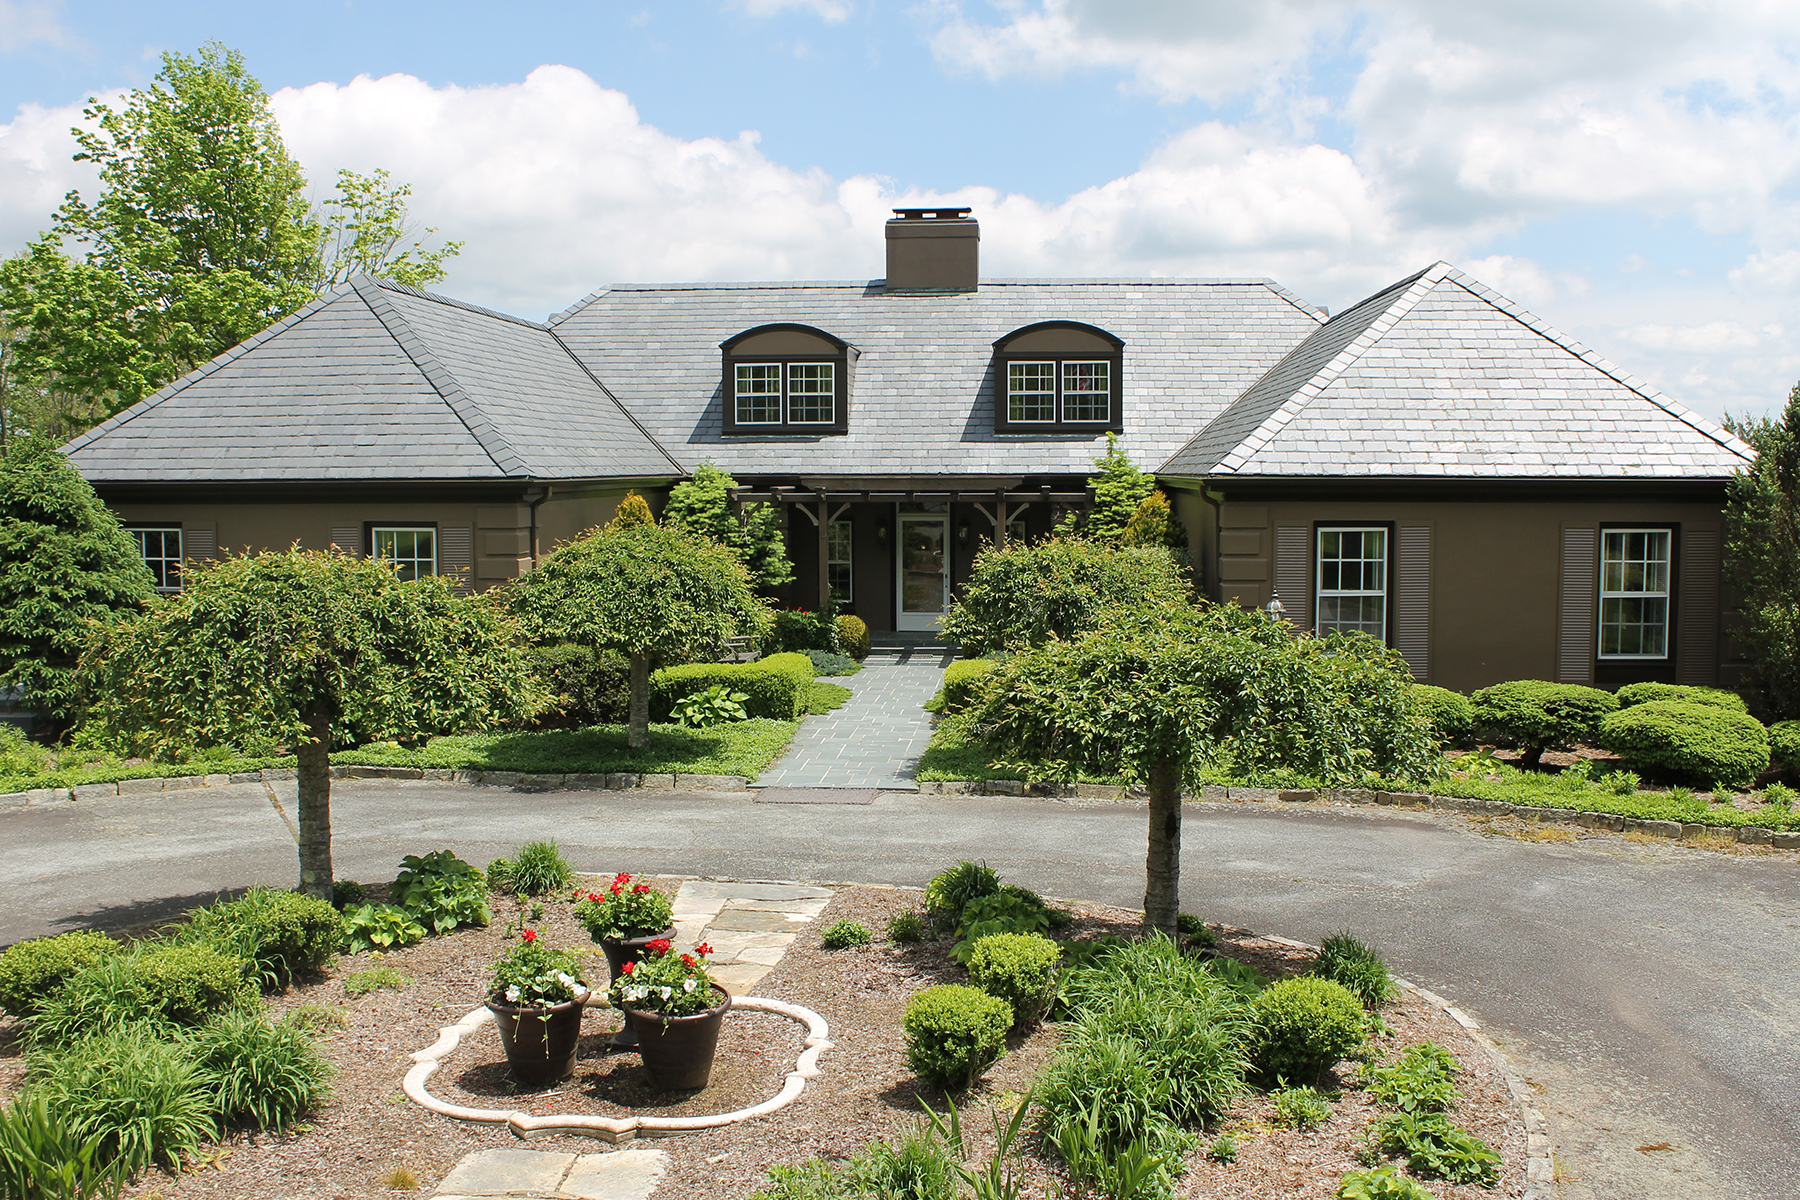 Single Family Home for Sale at BLOWING ROCK 1799 Flat Top Road, Blowing Rock, North Carolina 28605 United States